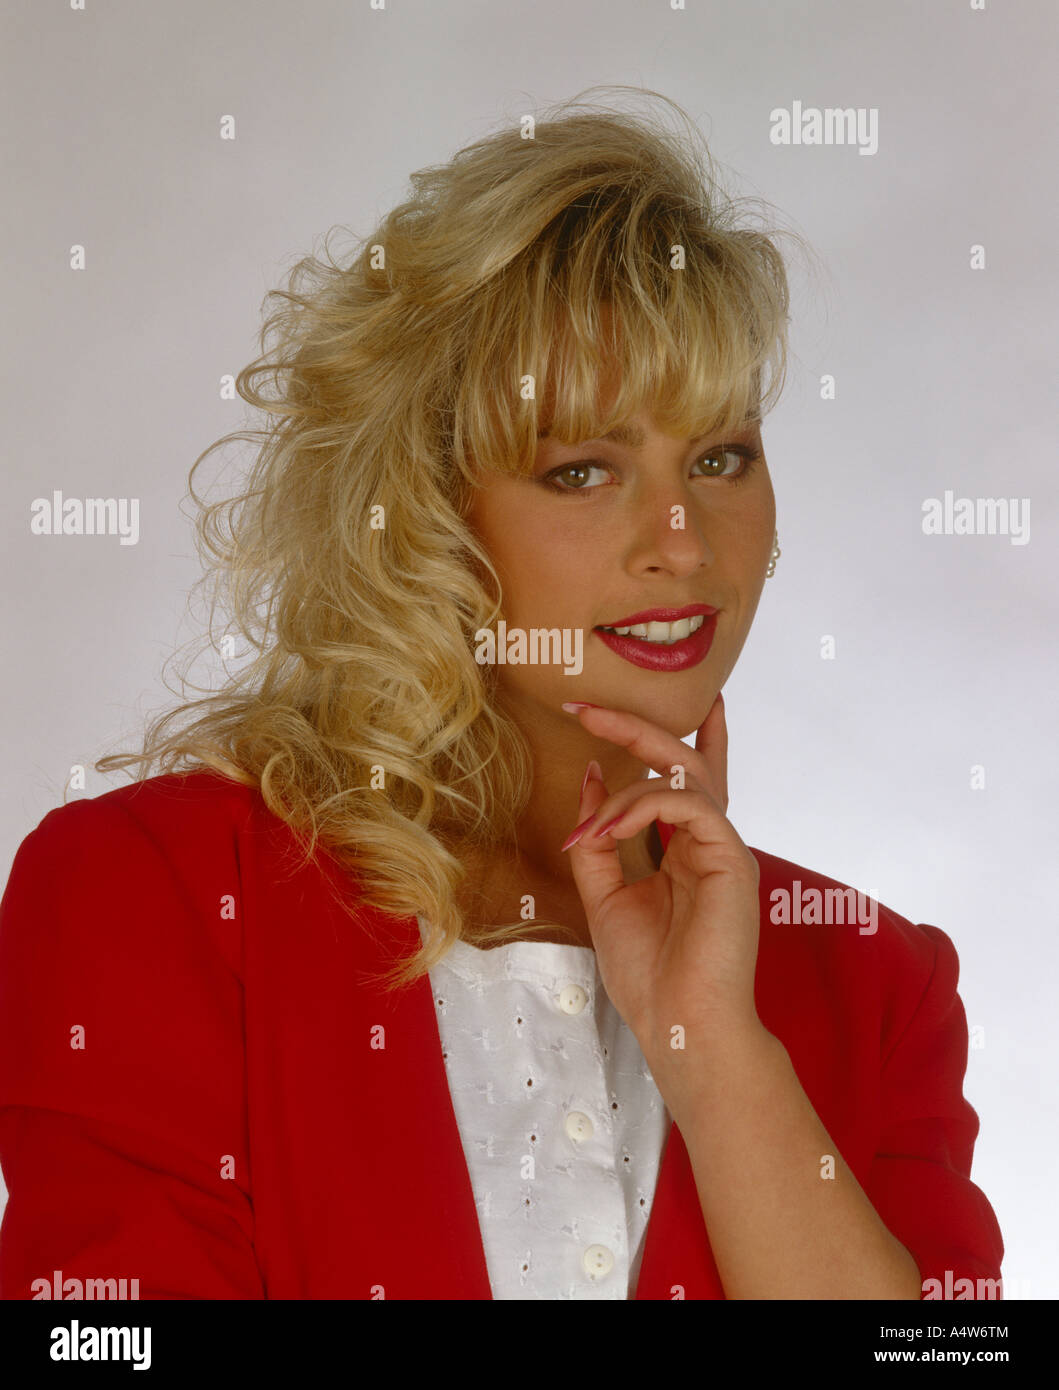 TRACEY COLEMAN IN RED JACKET Stock Photo, Royalty Free ...